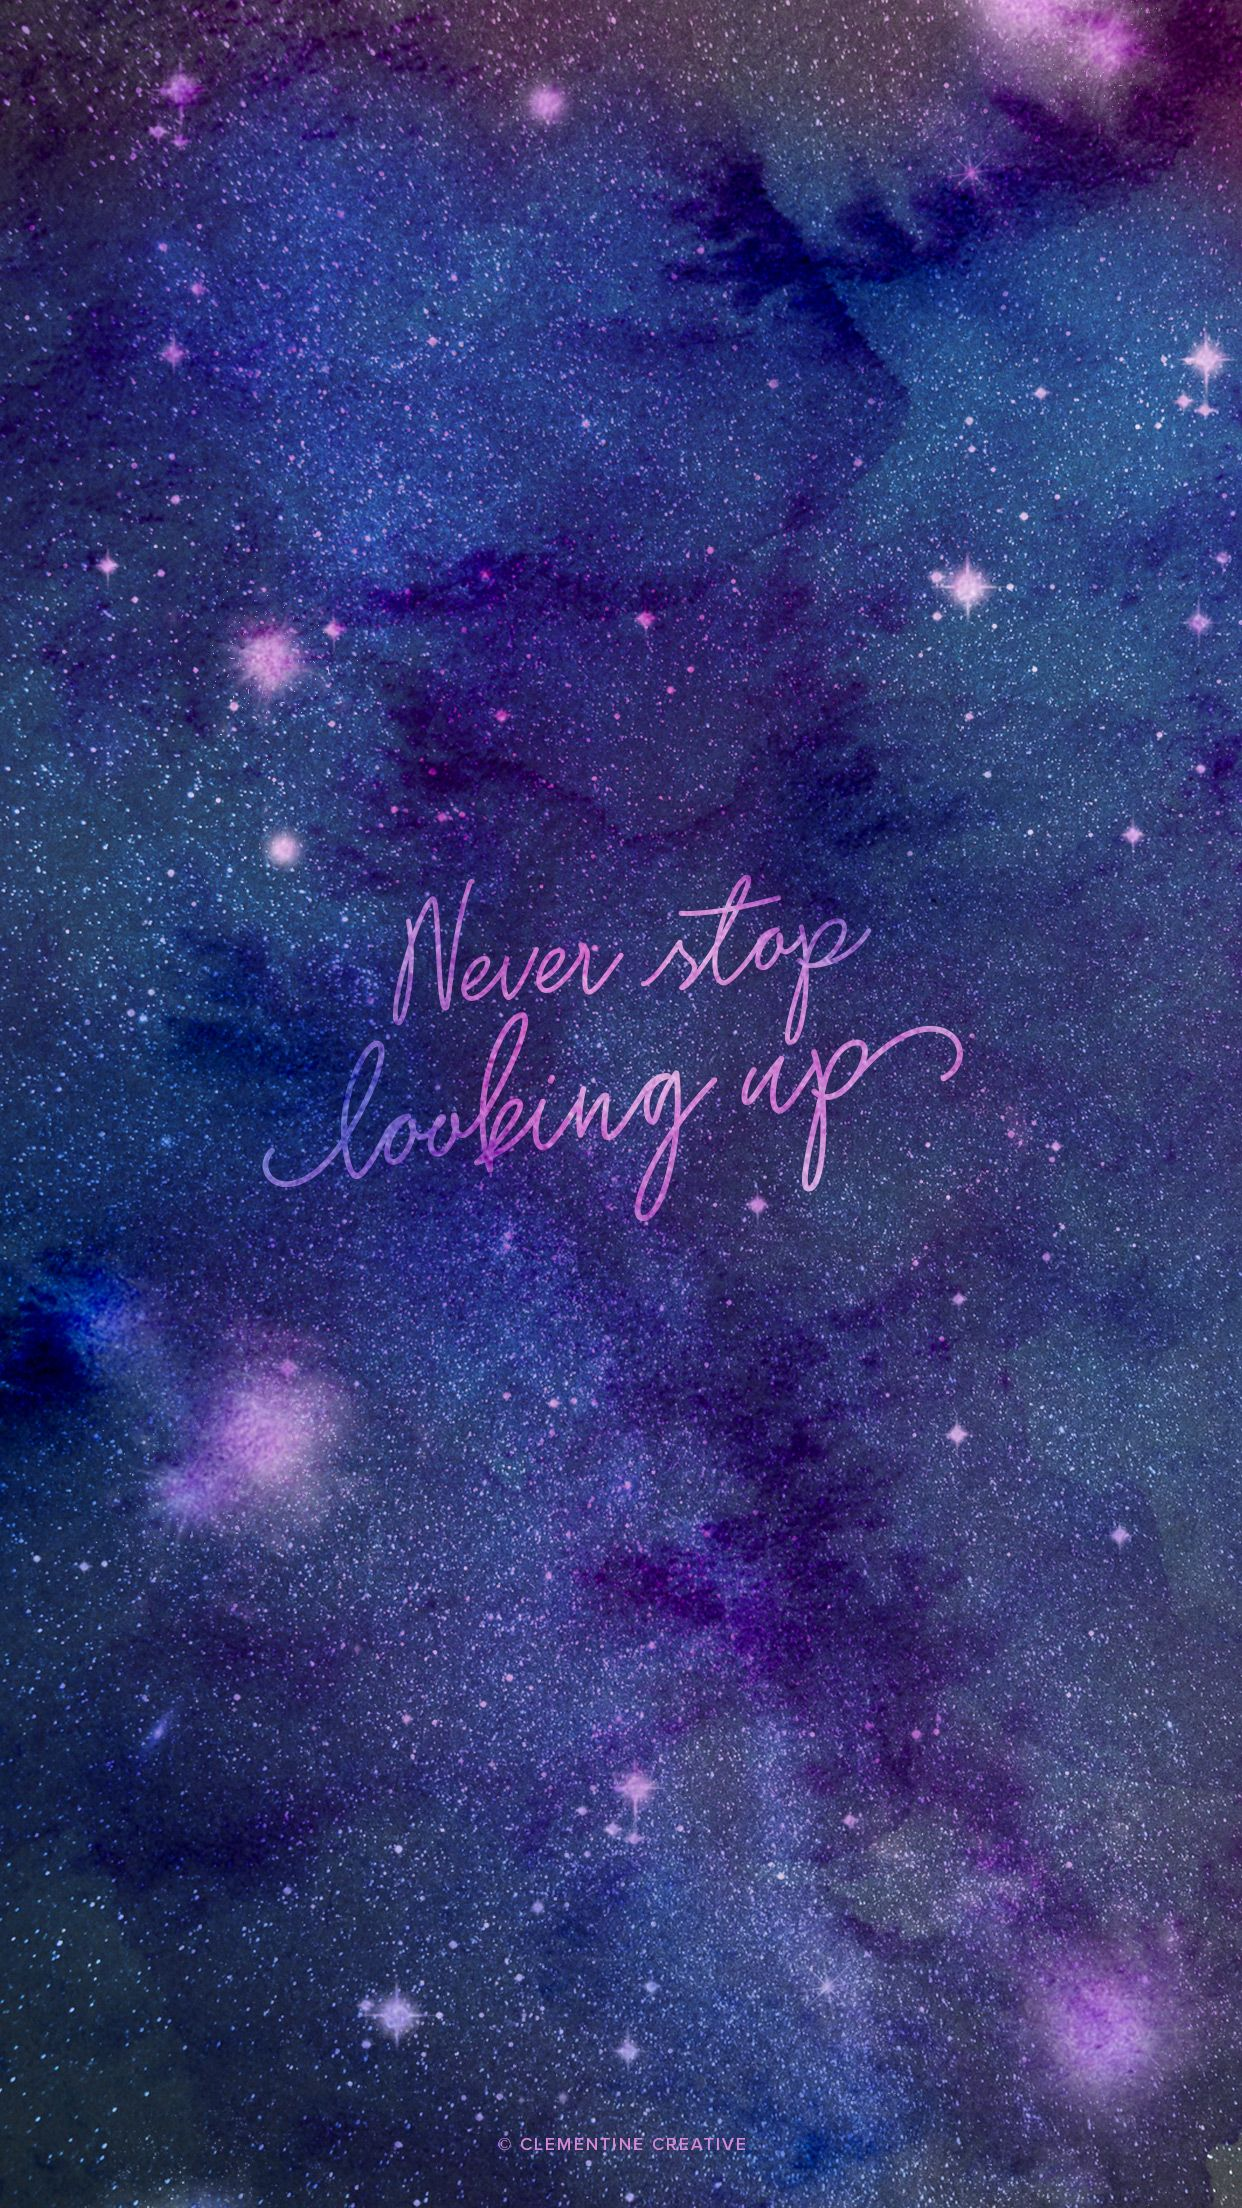 Never Stop Looking Up Wallpaper Starry Sky Background For Your Devices Phone Wallpaper Quotes Wallpaper Quotes Positive Wallpapers